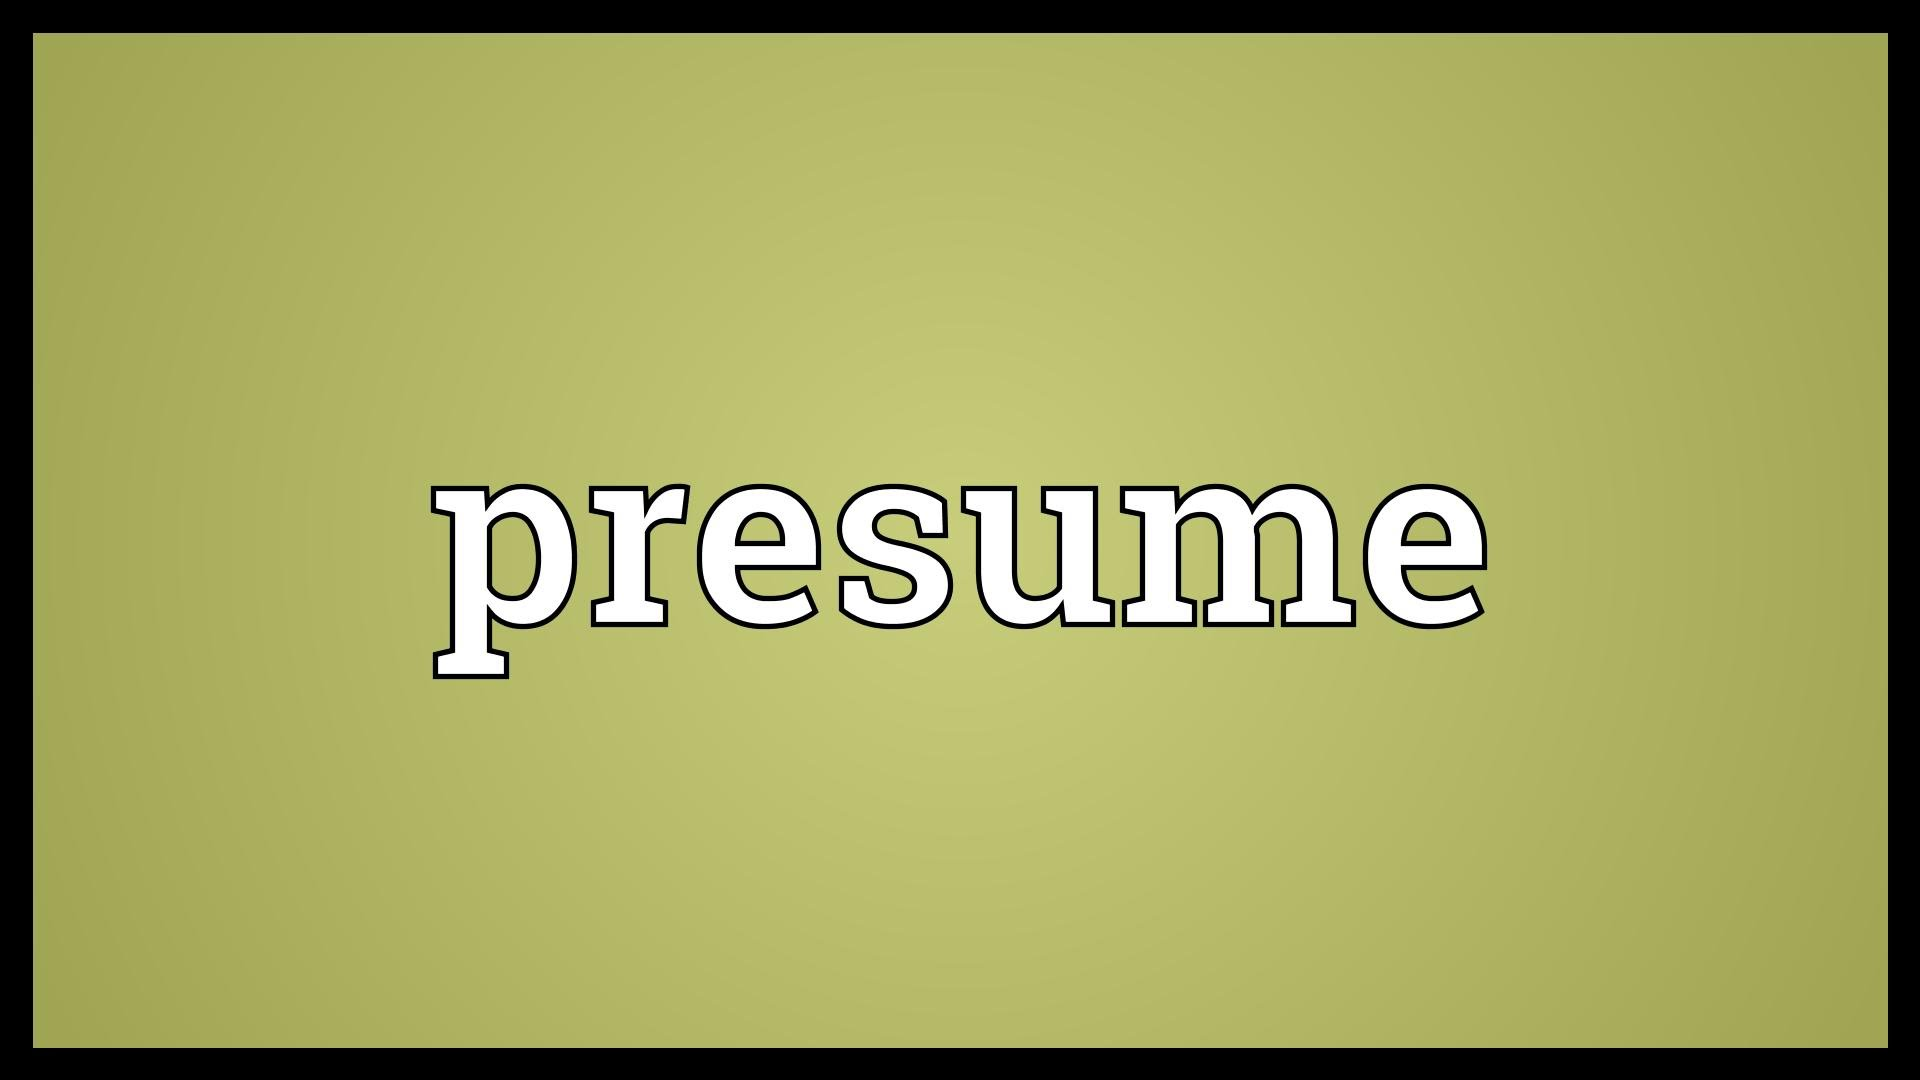 the about presume uldissprogis